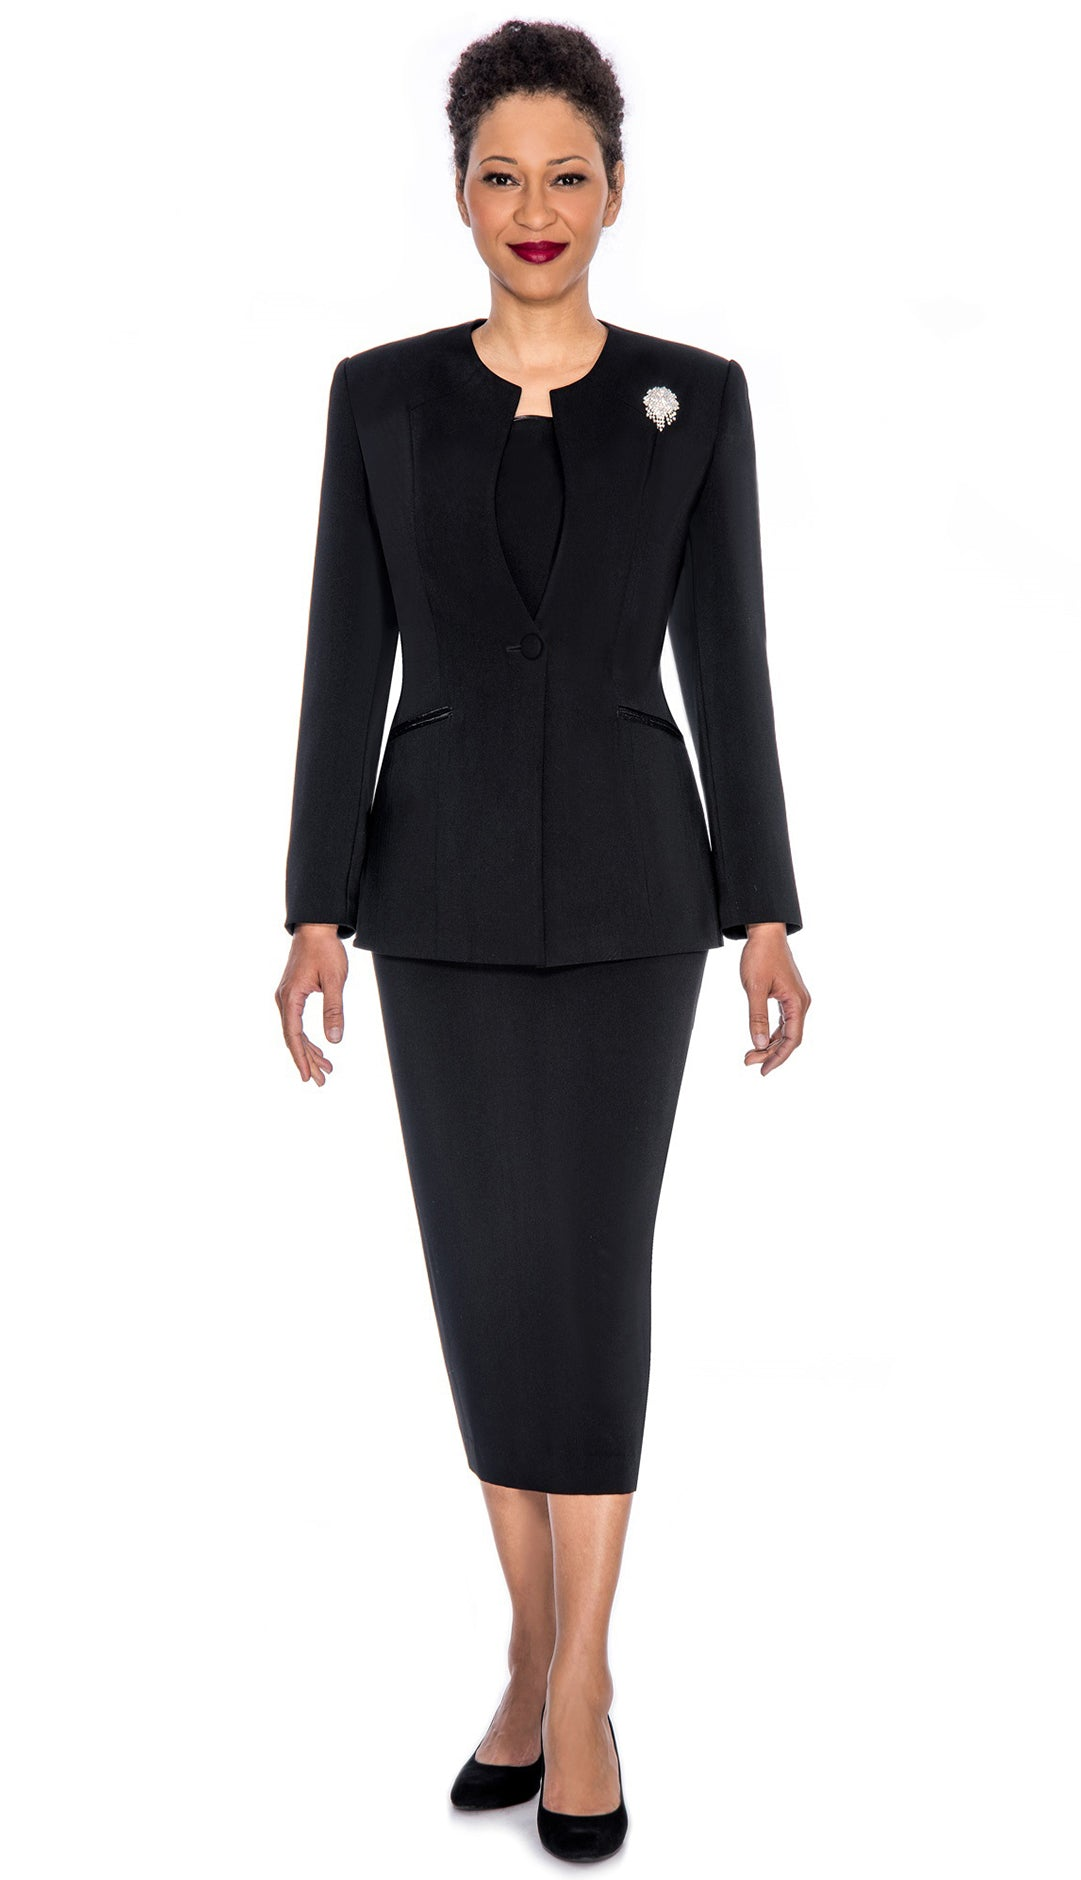 Giovanna Usher Suit 0708-Black - Church Suits For Less